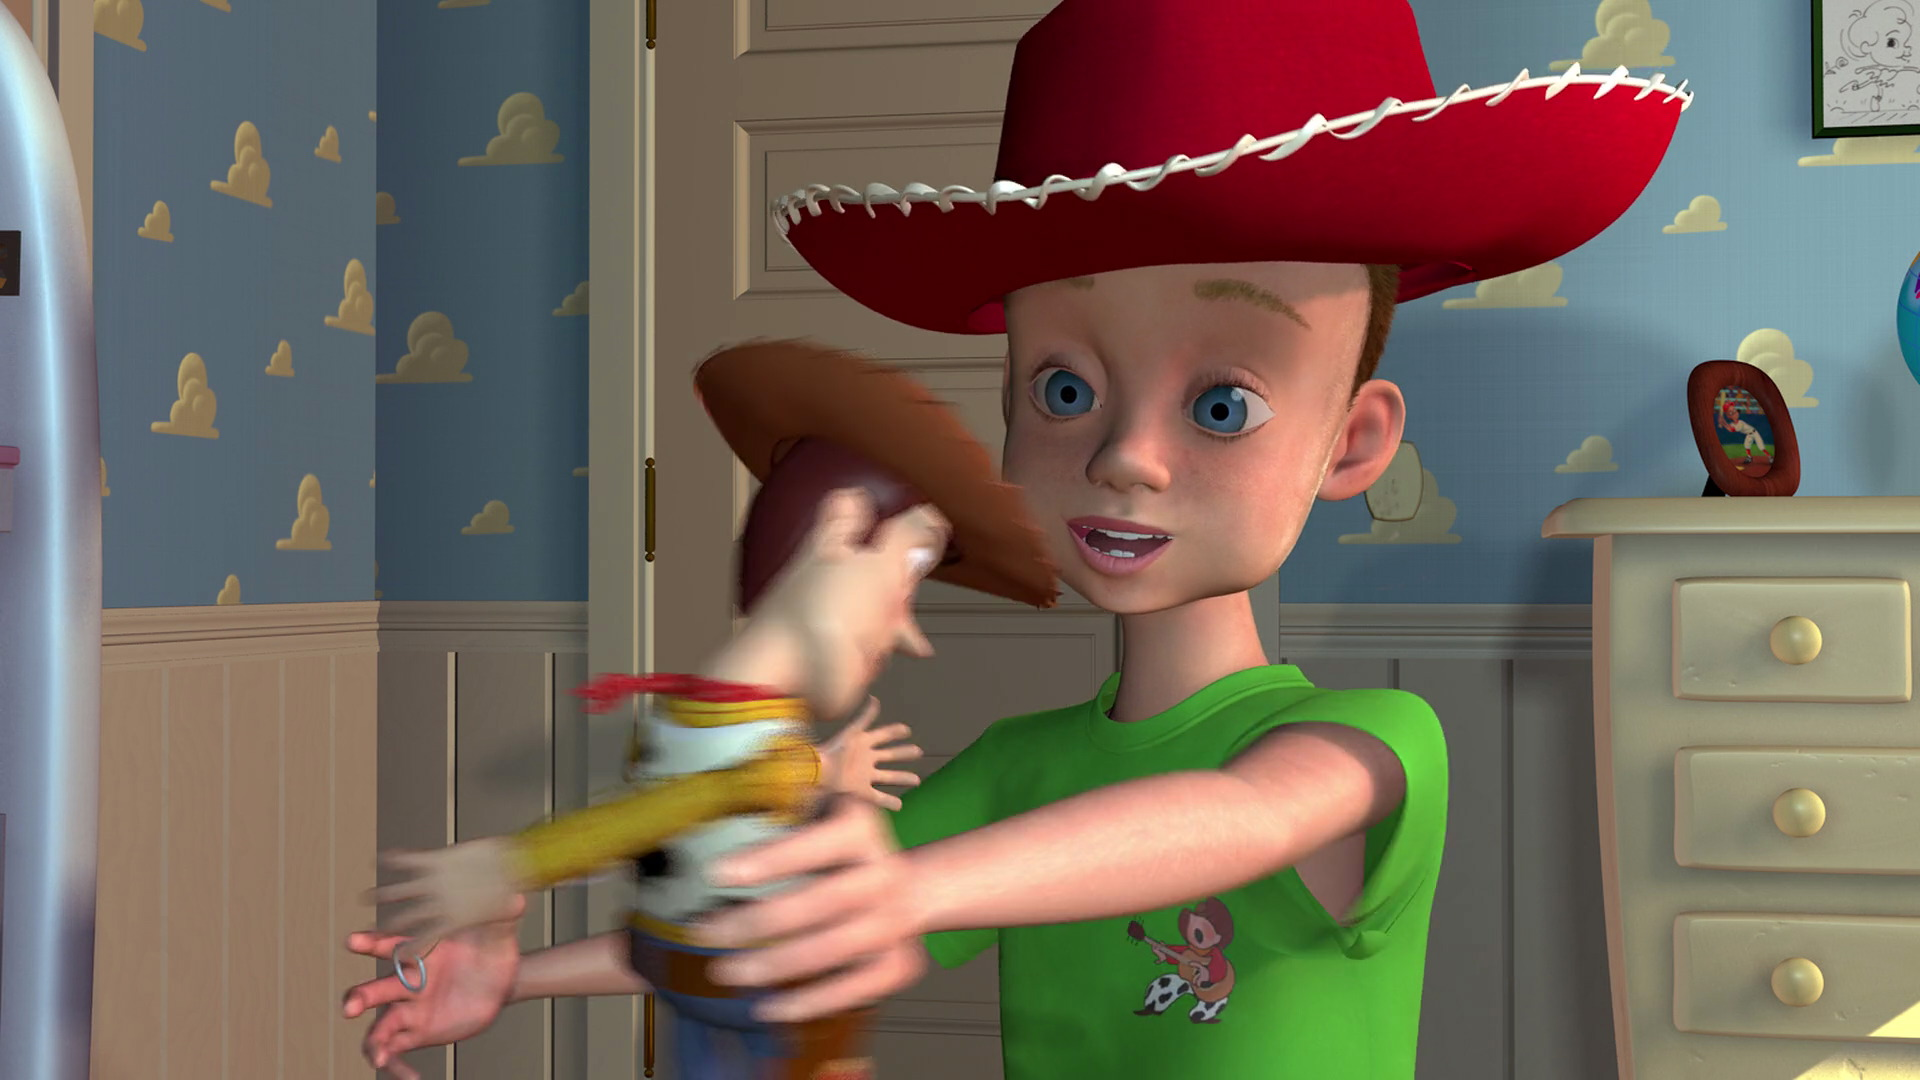 Vignette Wikia Nocookie Net Toystory72 Images 9 93